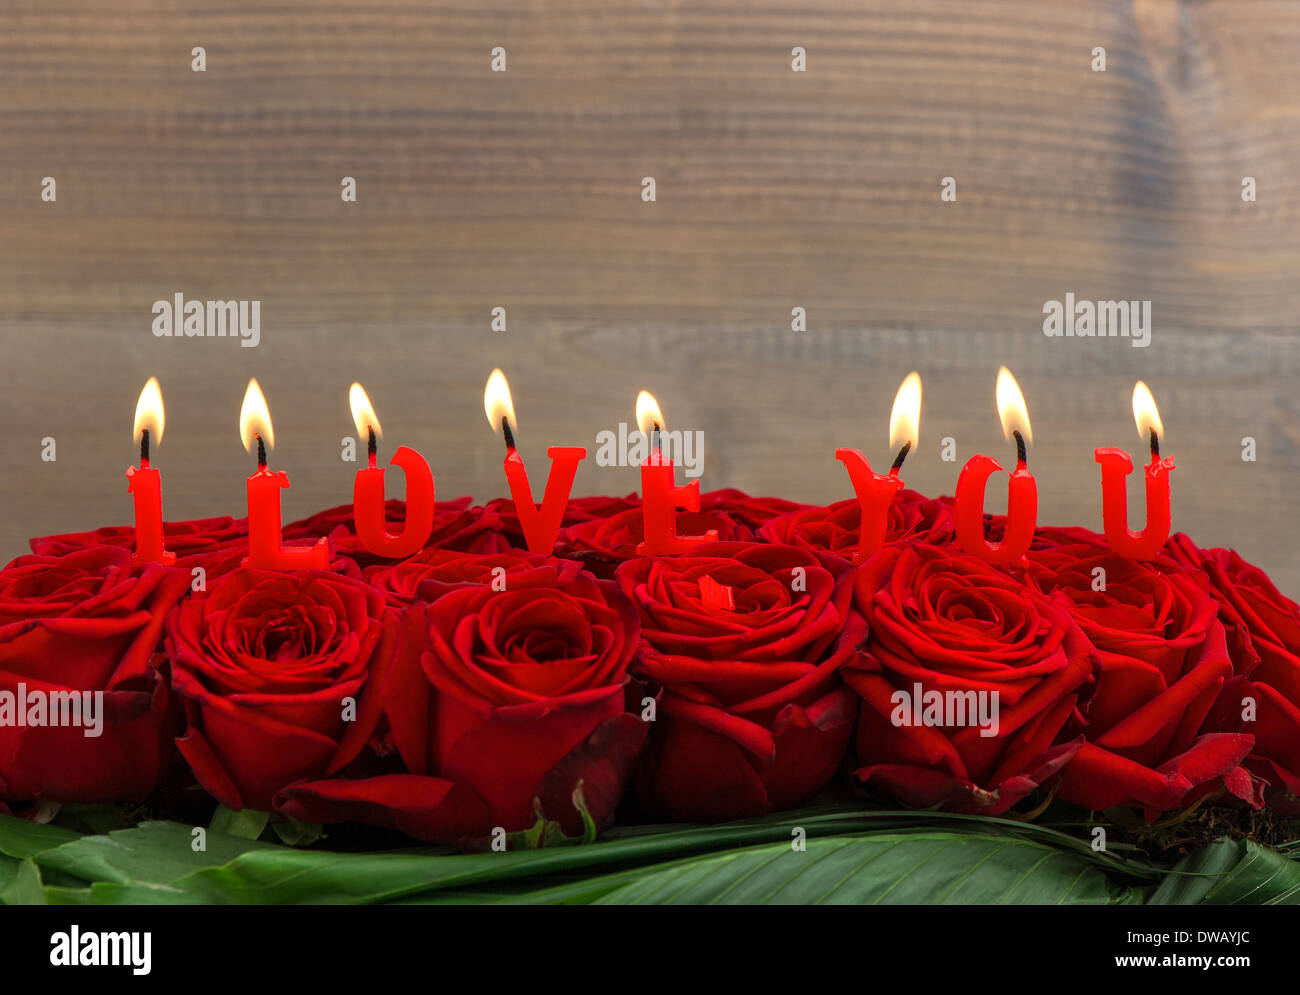 Red Roses And Burning Candles Making I Love You Flower Arrangement Stock Photo Alamy